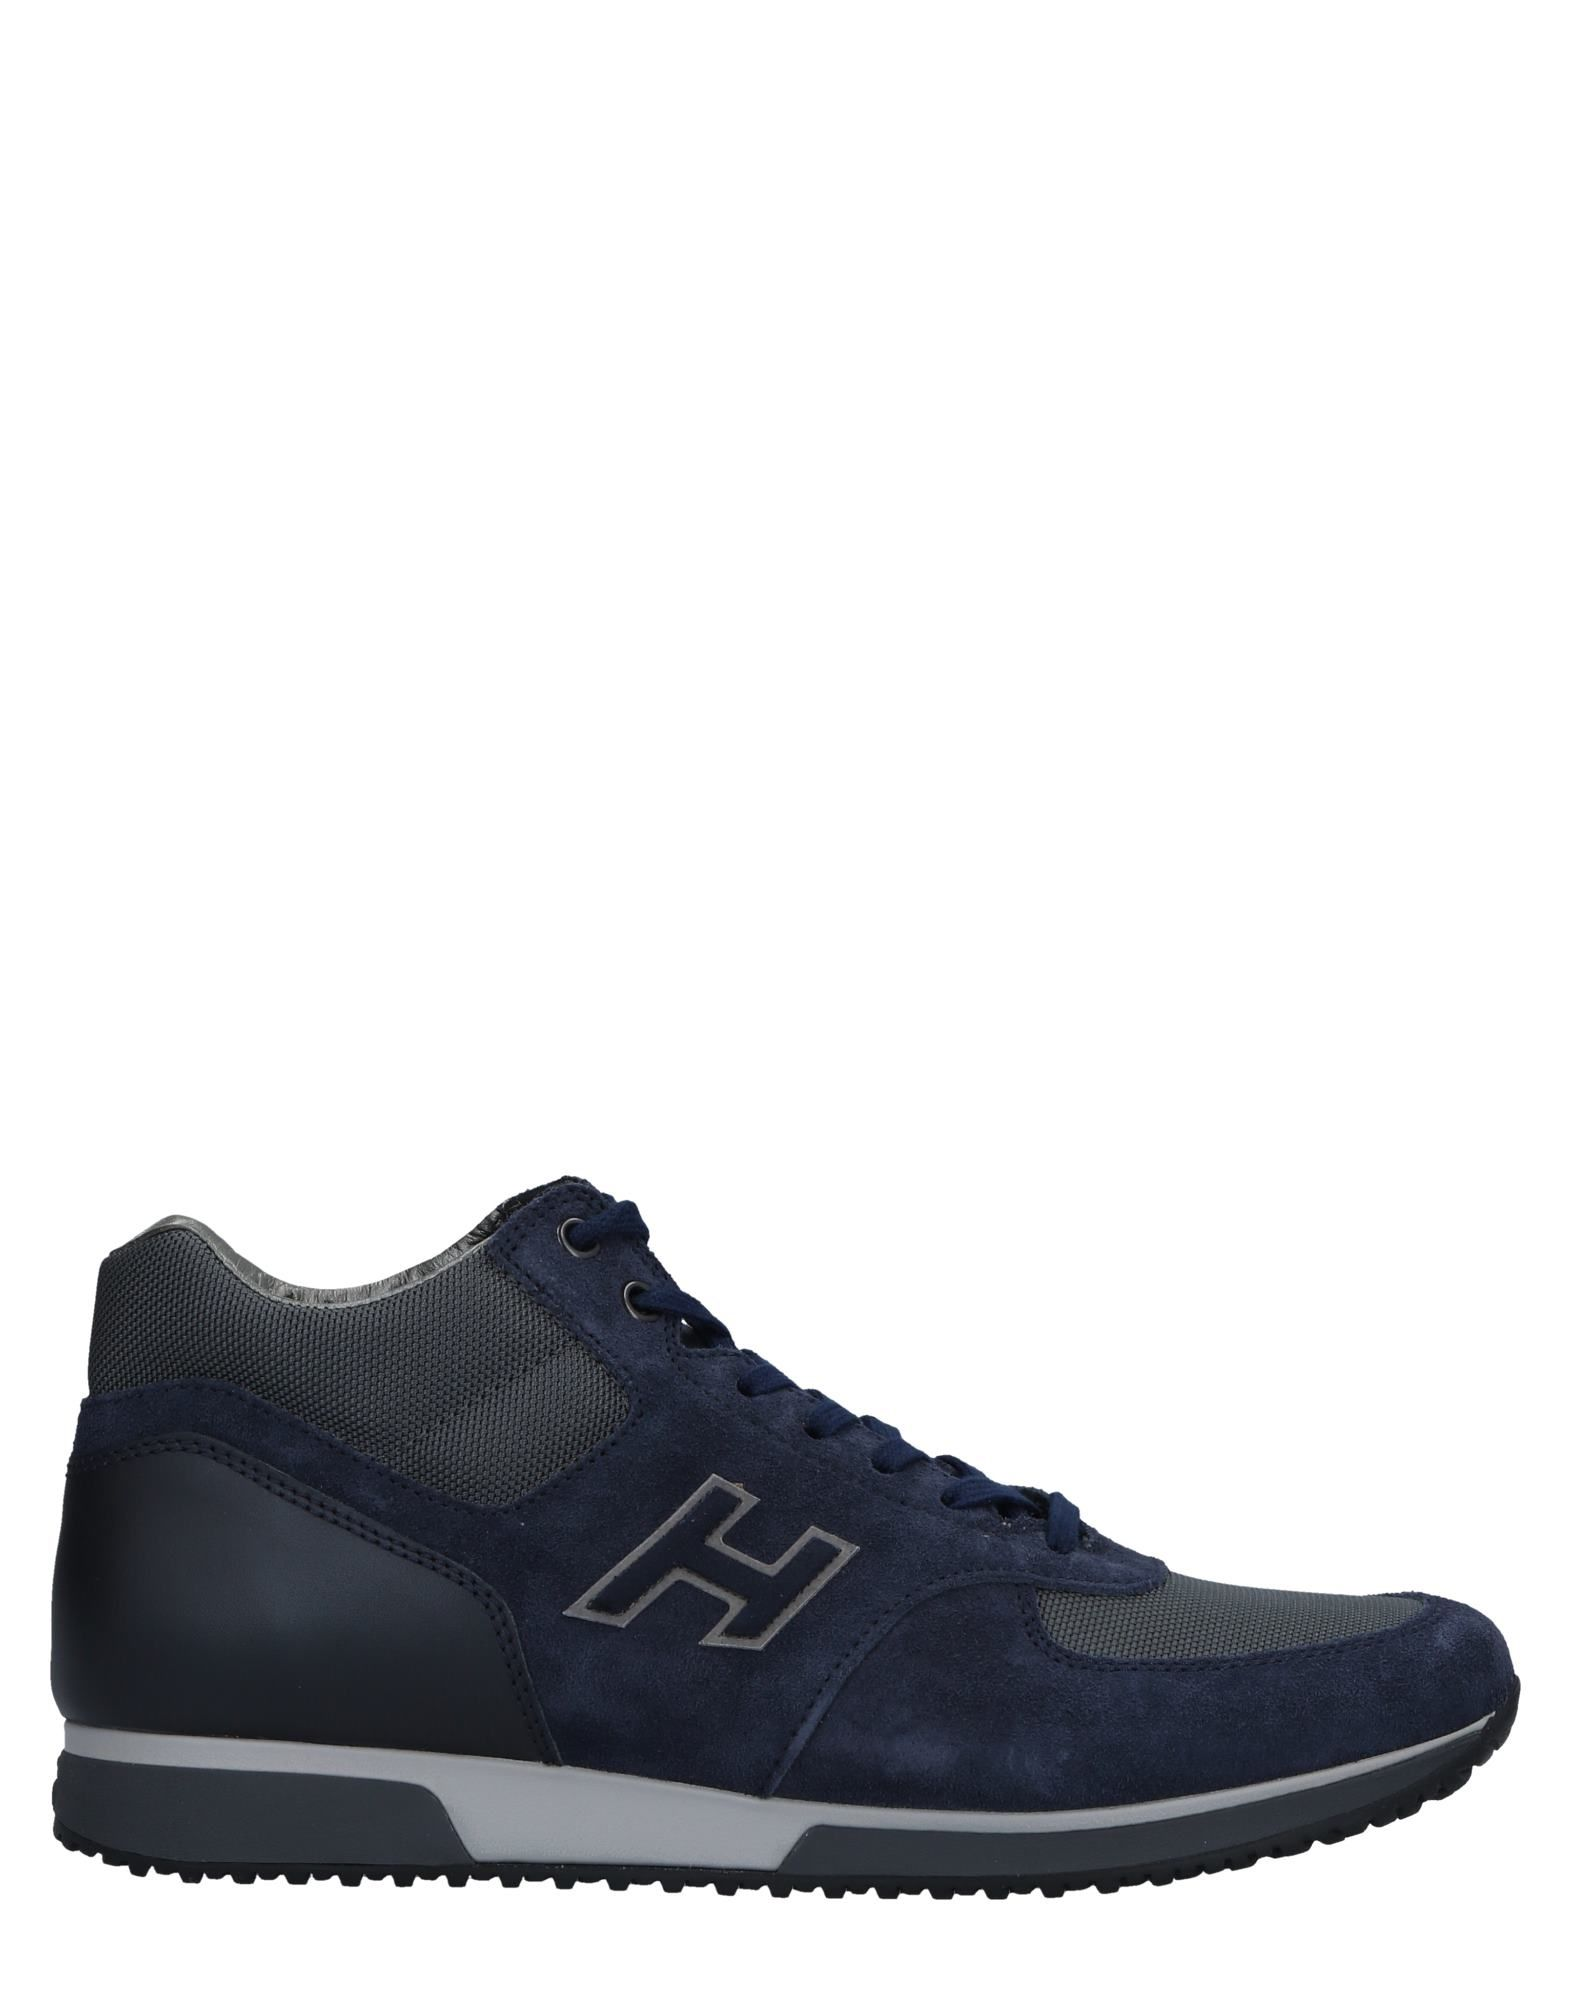 Hogan Sneakers United - Men Hogan Sneakers online on  United Sneakers Kingdom - 11517241OE 44dbb2